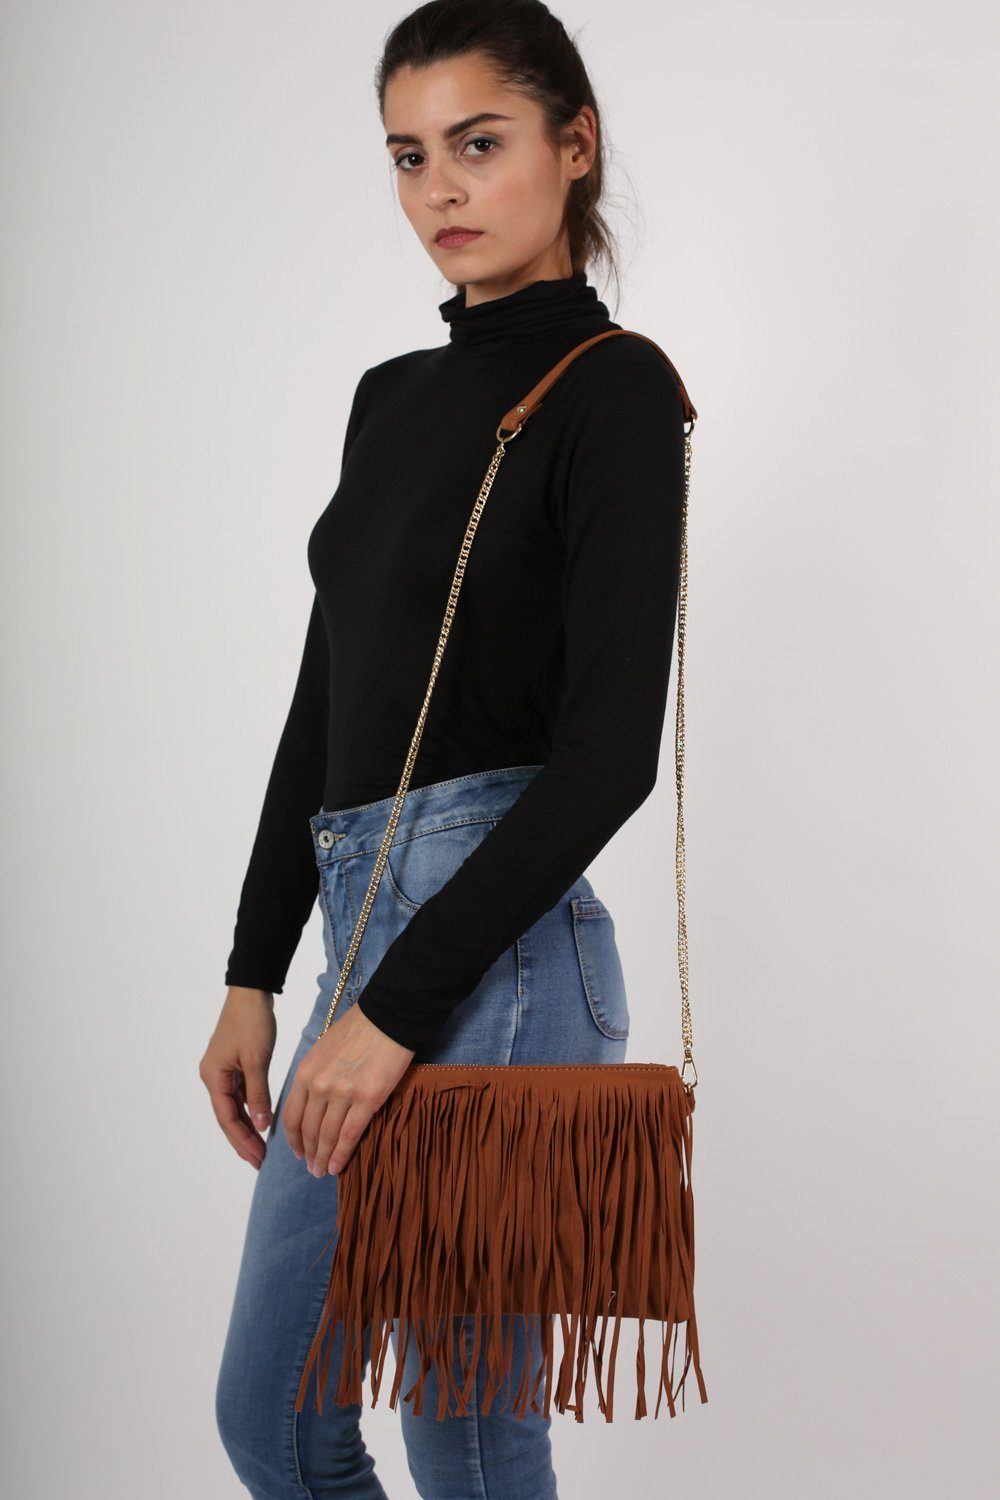 Suedette Tassel Bag in Tan Brown 0